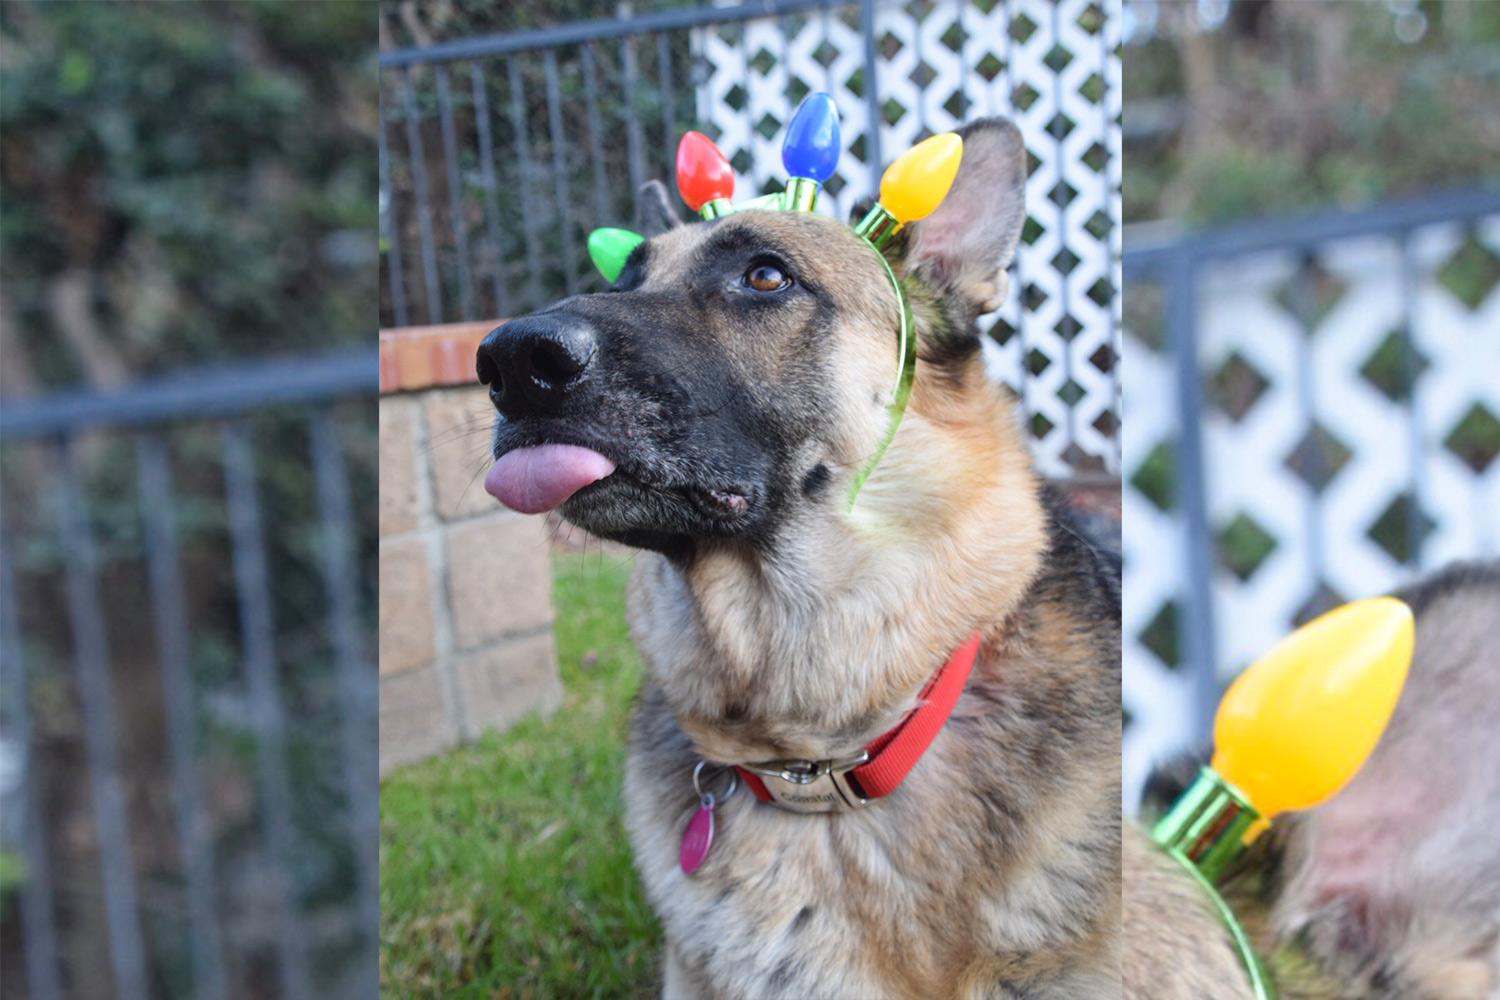 Doris H. sent a picture of her adorable six-year-old German Shepherd Ziva, wearing a headband of festive Christmas lights, while being silly with her tongue sticking out!